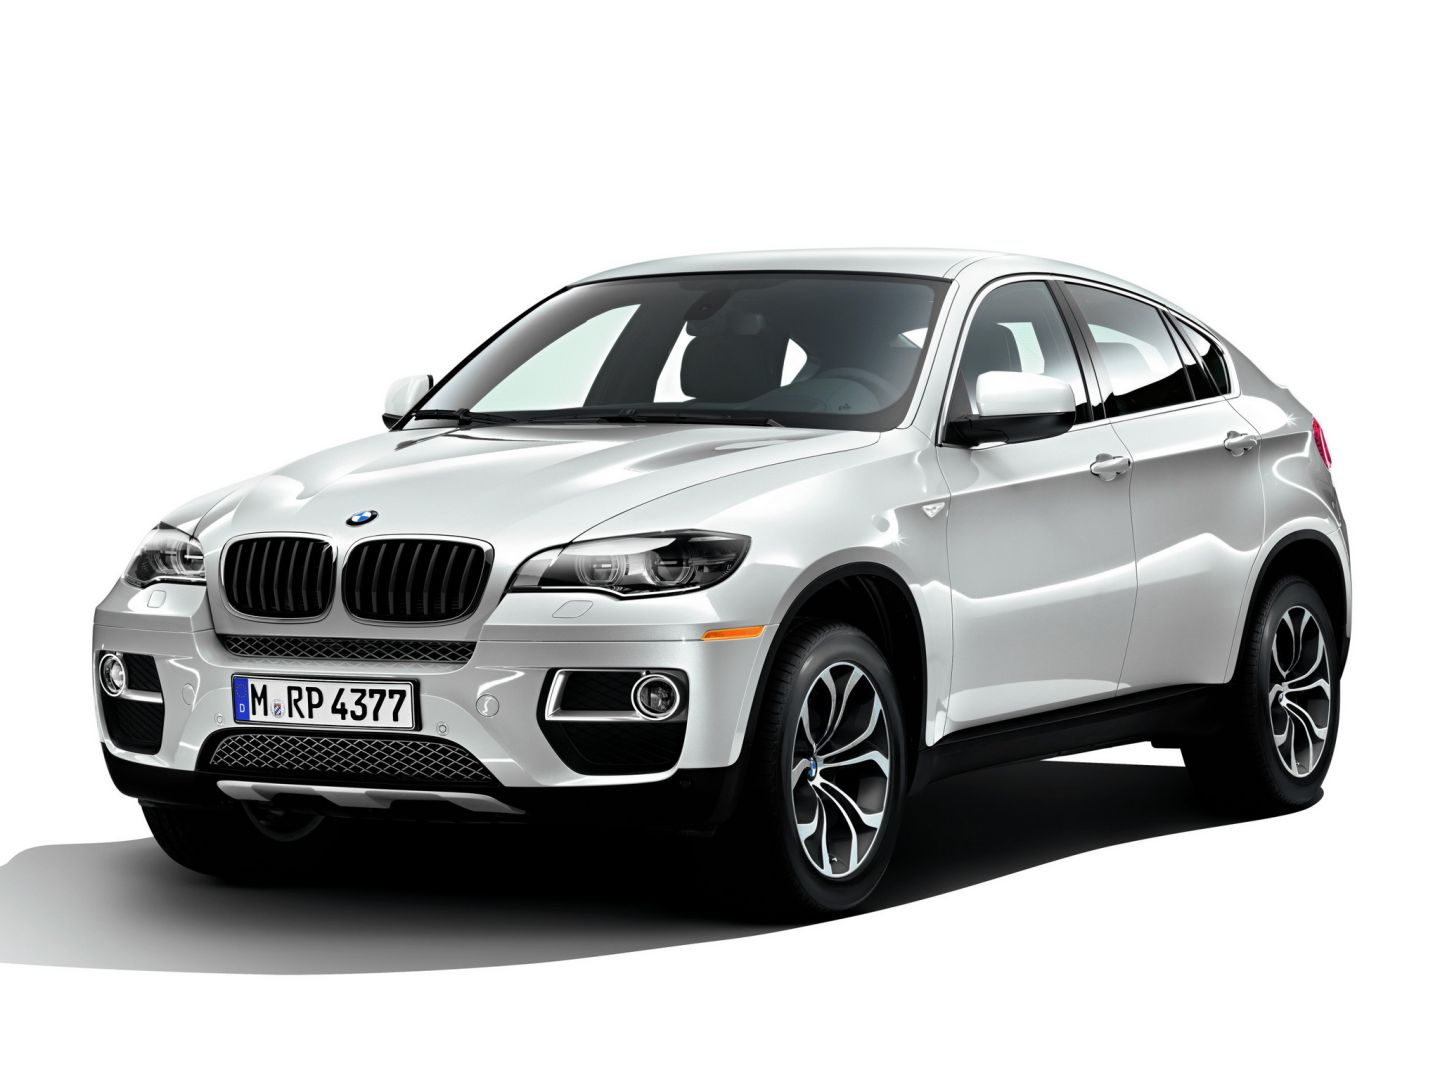 Bmw X6 E71 Specs Amp Photos 2010 2011 2012 2013 2014 Autoevolution